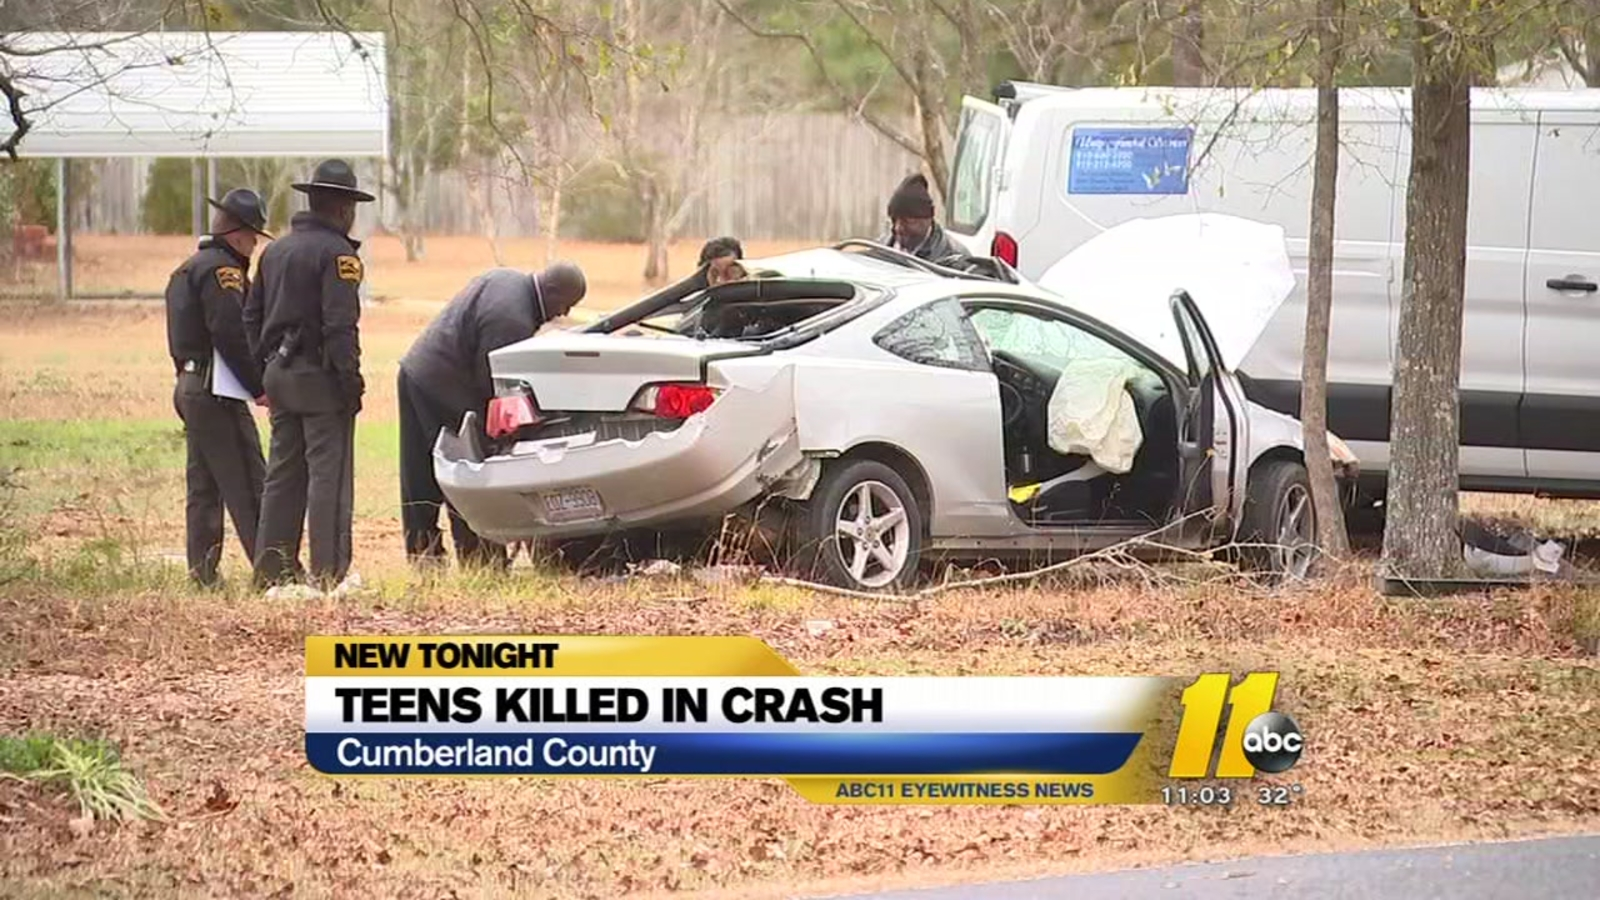 Speeding A Factor In Crash That Killed 2 Fayetteville